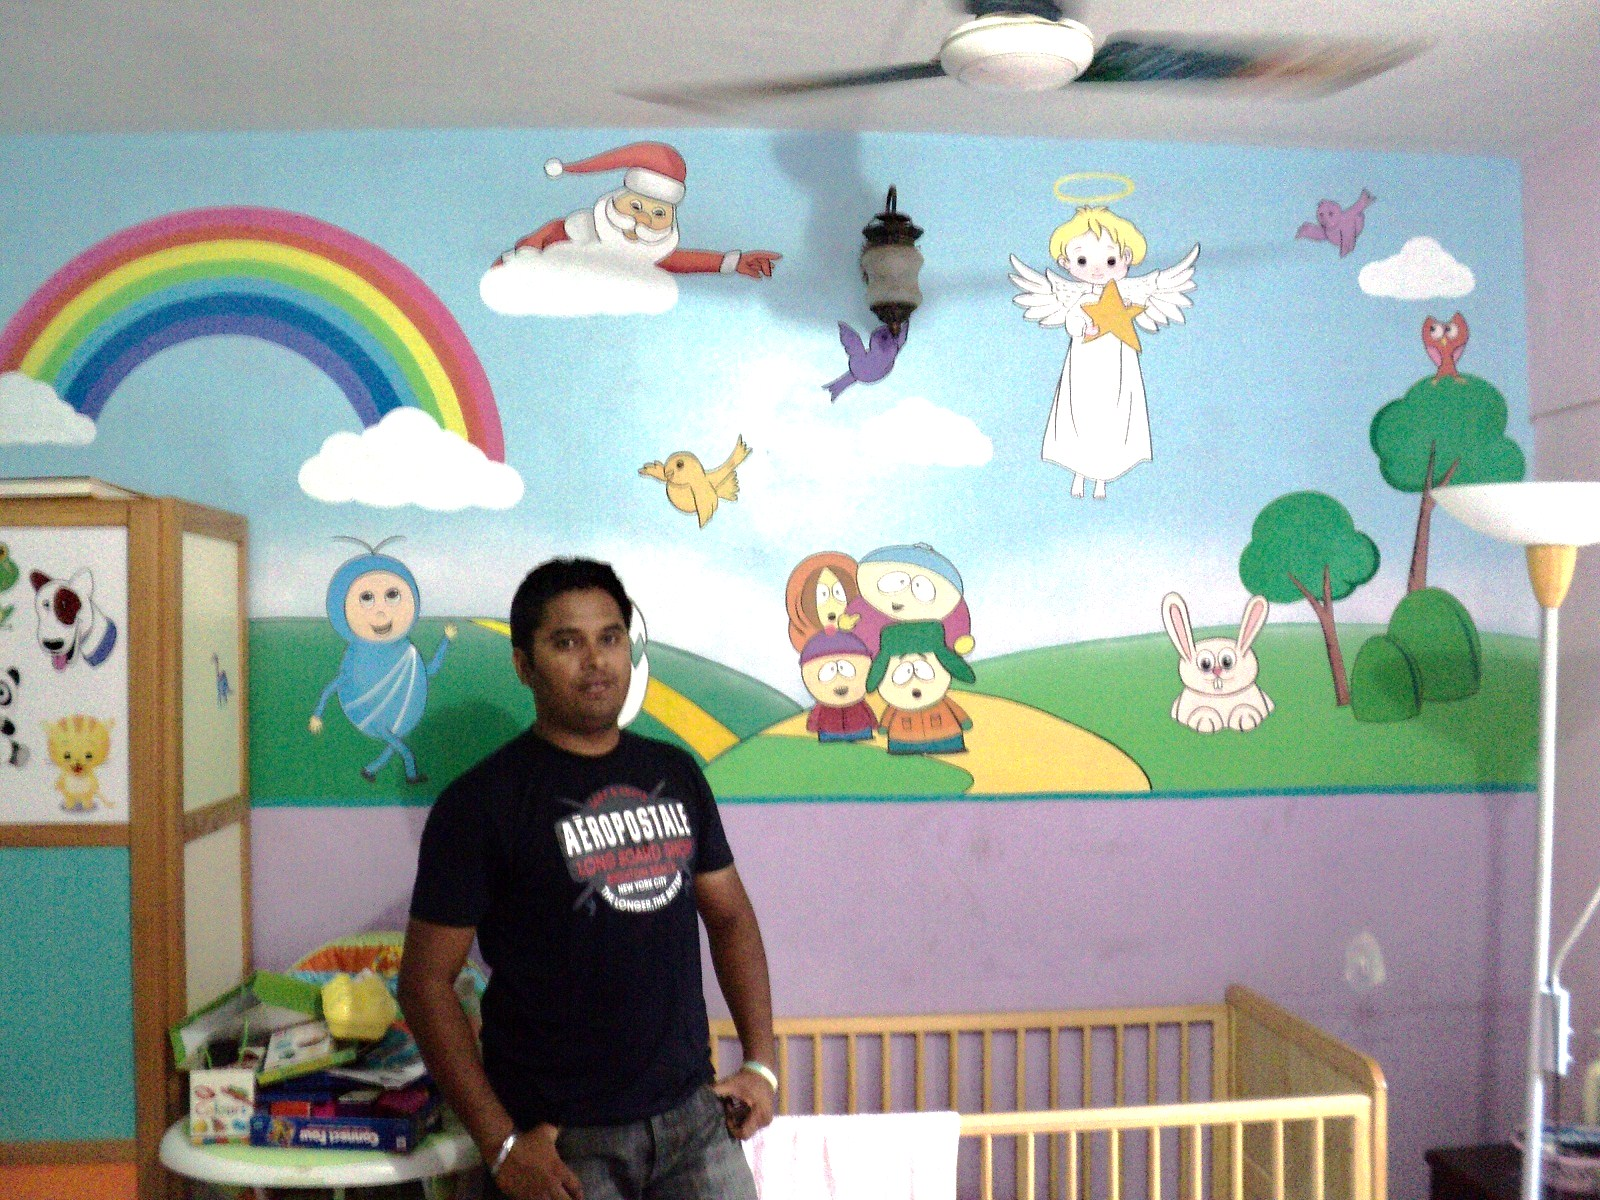 Day care school classroom cartoon painting santacruz for Children mural ideas